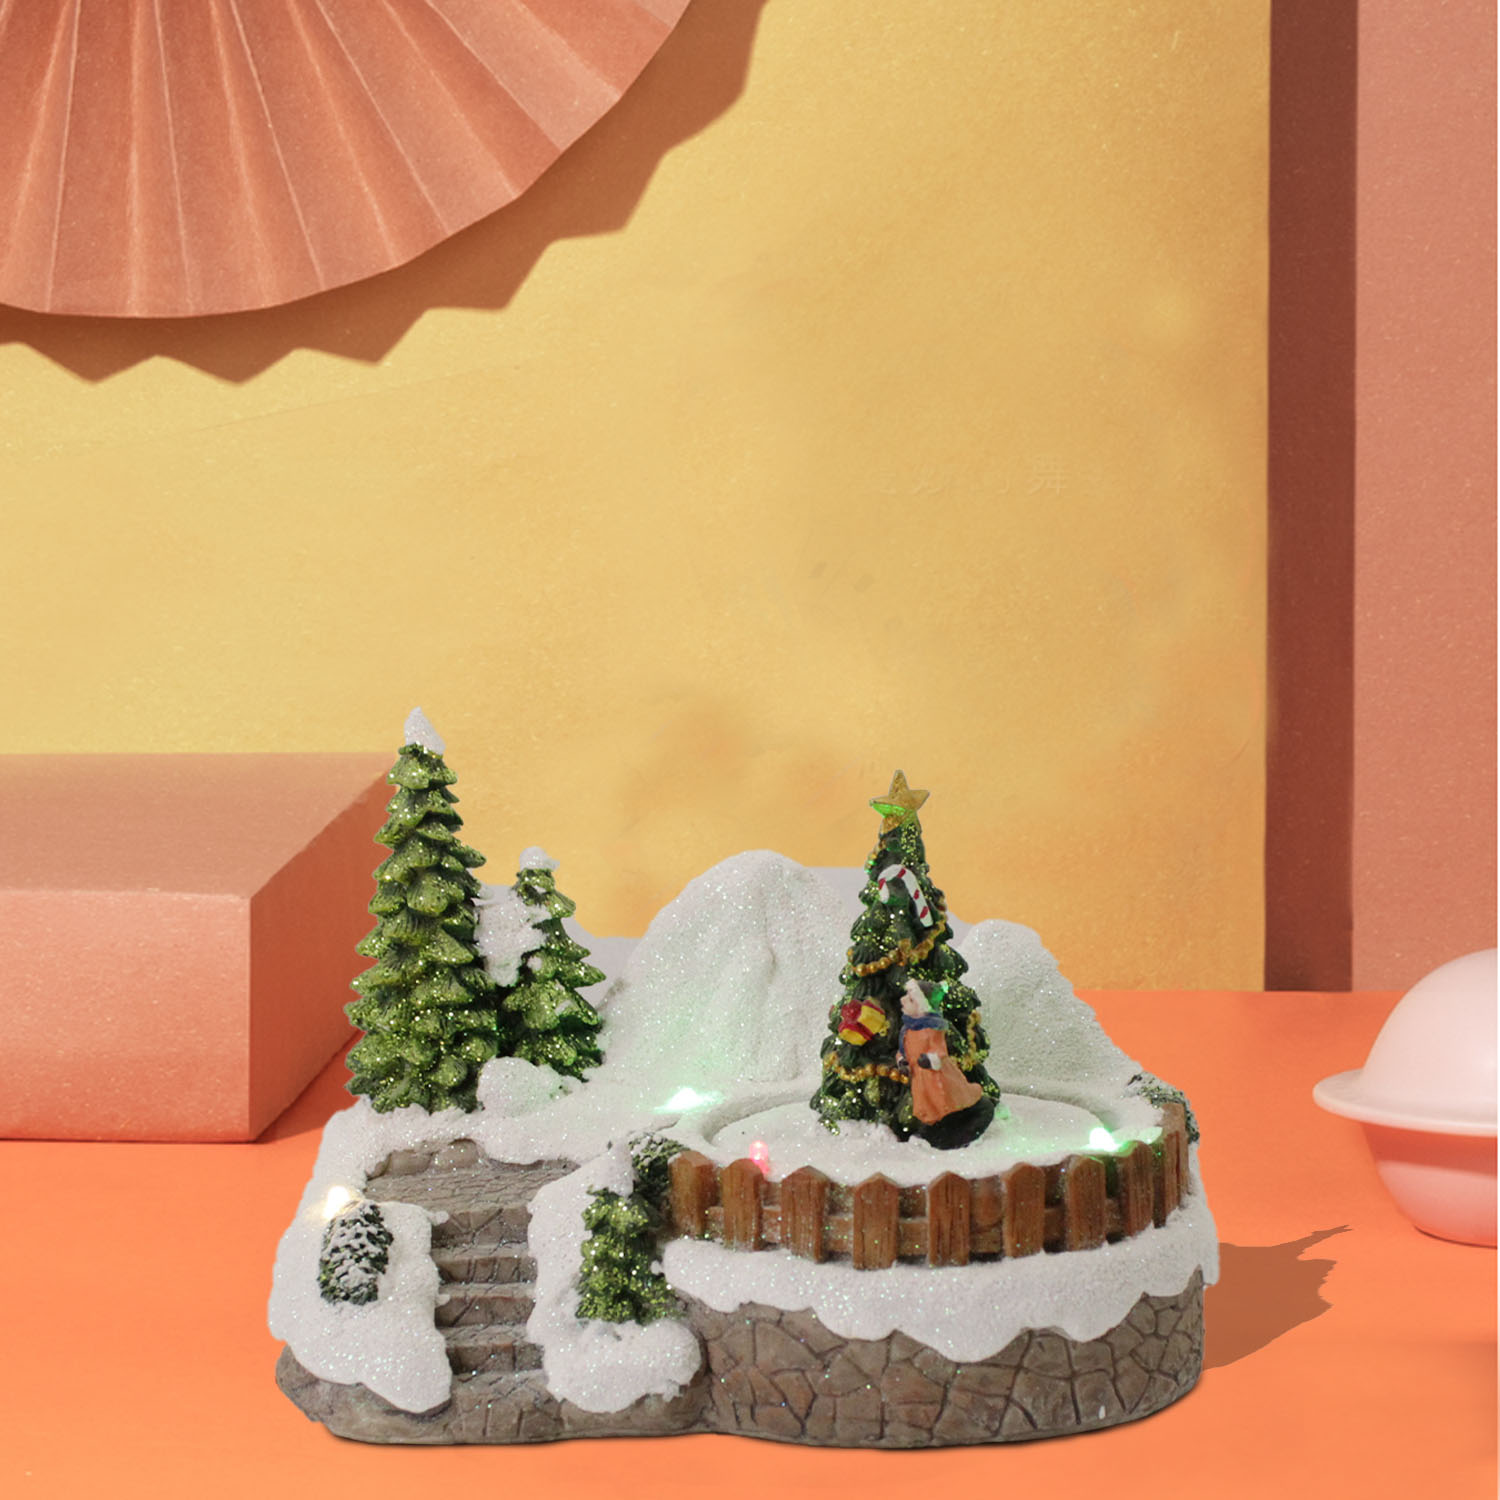 Christmas Village House Resin Ornament with Led Light for Christmas Home Decorations